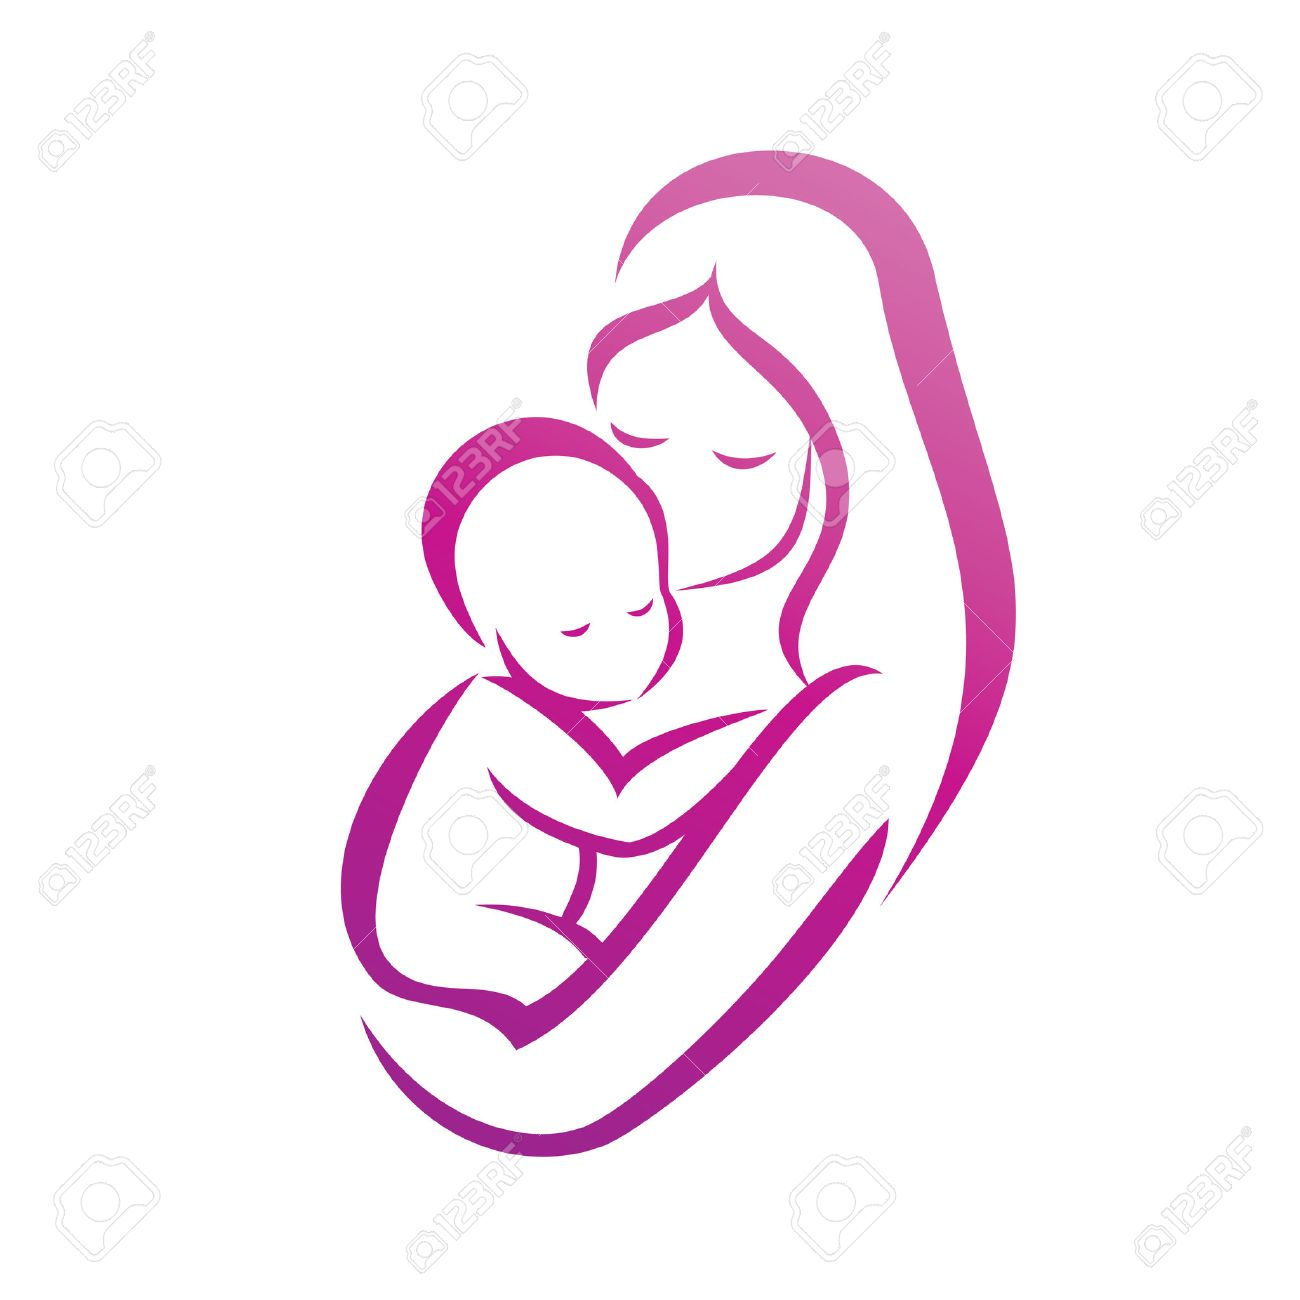 mother and her baby silhouette, isolated vector symbol - 28455812